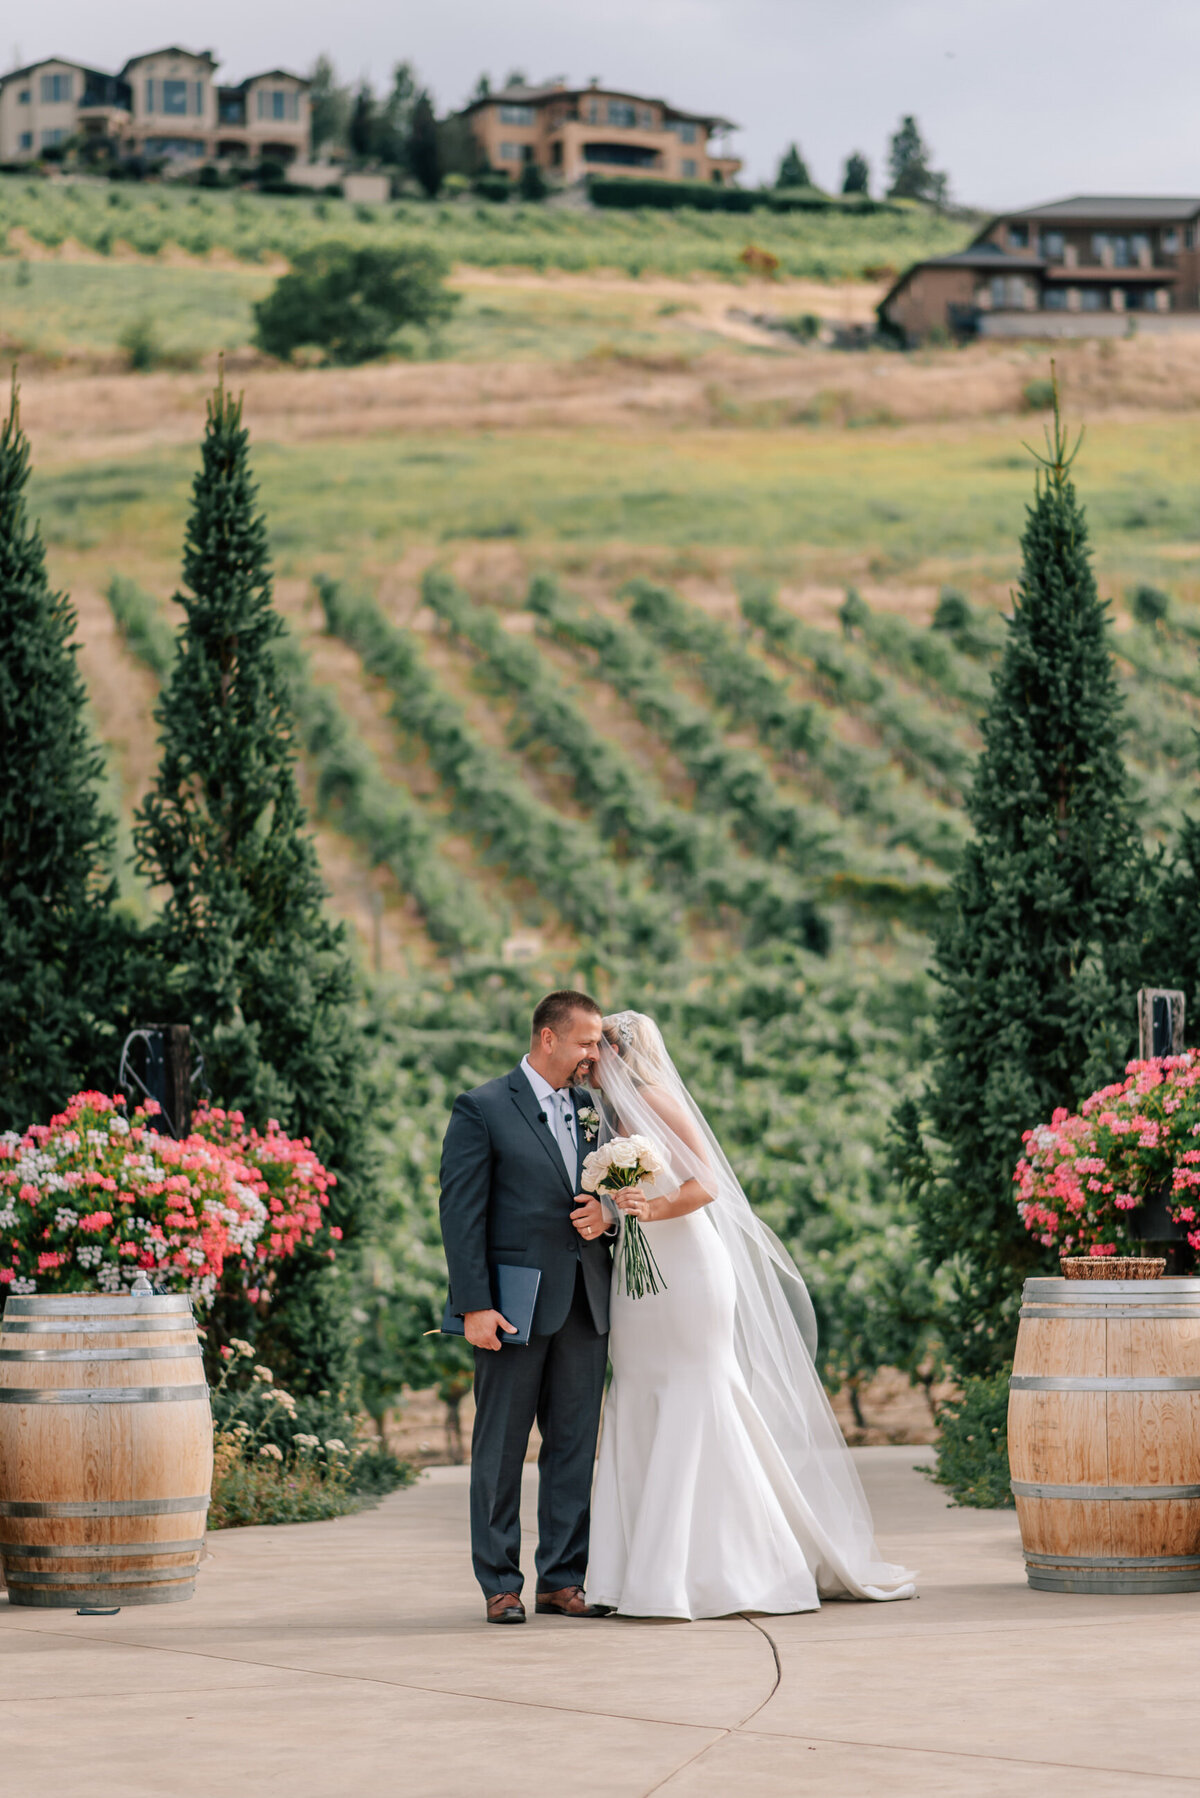 Father walking bride down the aisle during wedding ceremony at Karma Vineyards in Chelan, WA